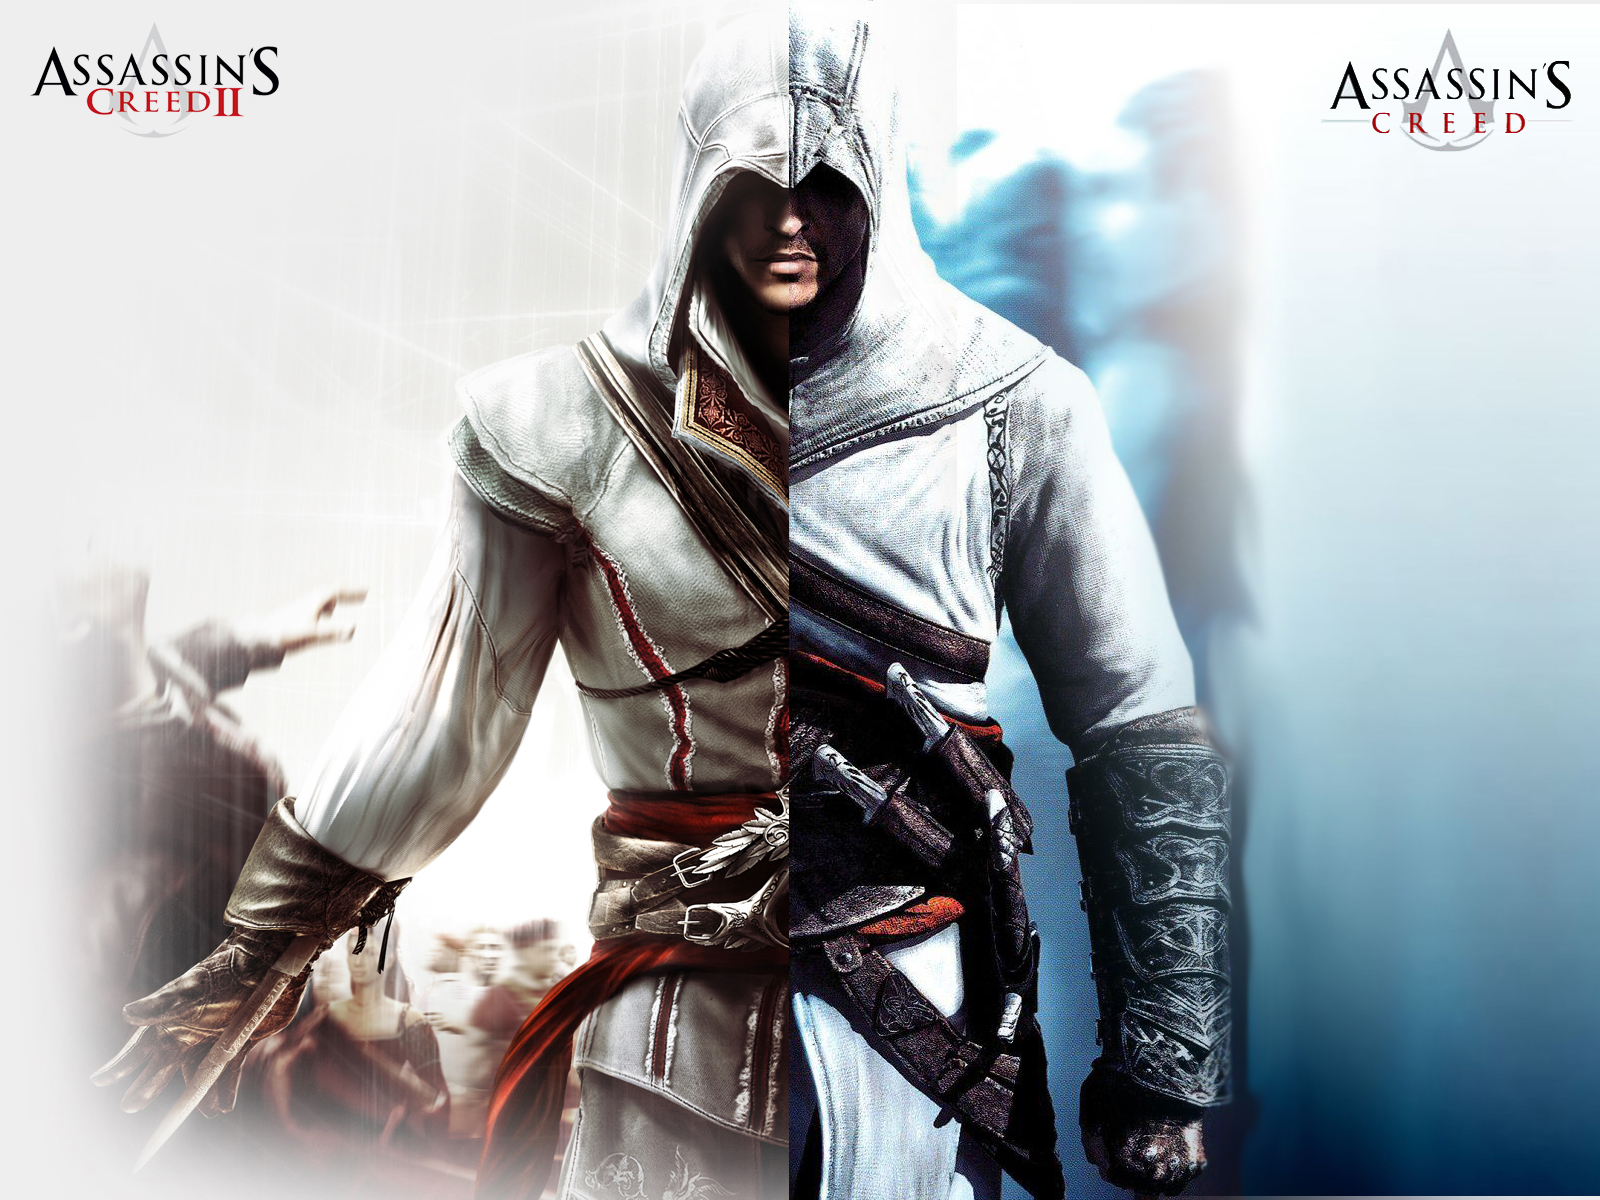 http://2.bp.blogspot.com/-2G4OhYu-Rds/UAOKbHLERlI/AAAAAAAABAg/YZAnQ9g9n0k/s1600/assassins+creed+1+2+ac1+ac2+ii+ezio+altair+fused+wallpaper+background+ubisoft+action.jpg